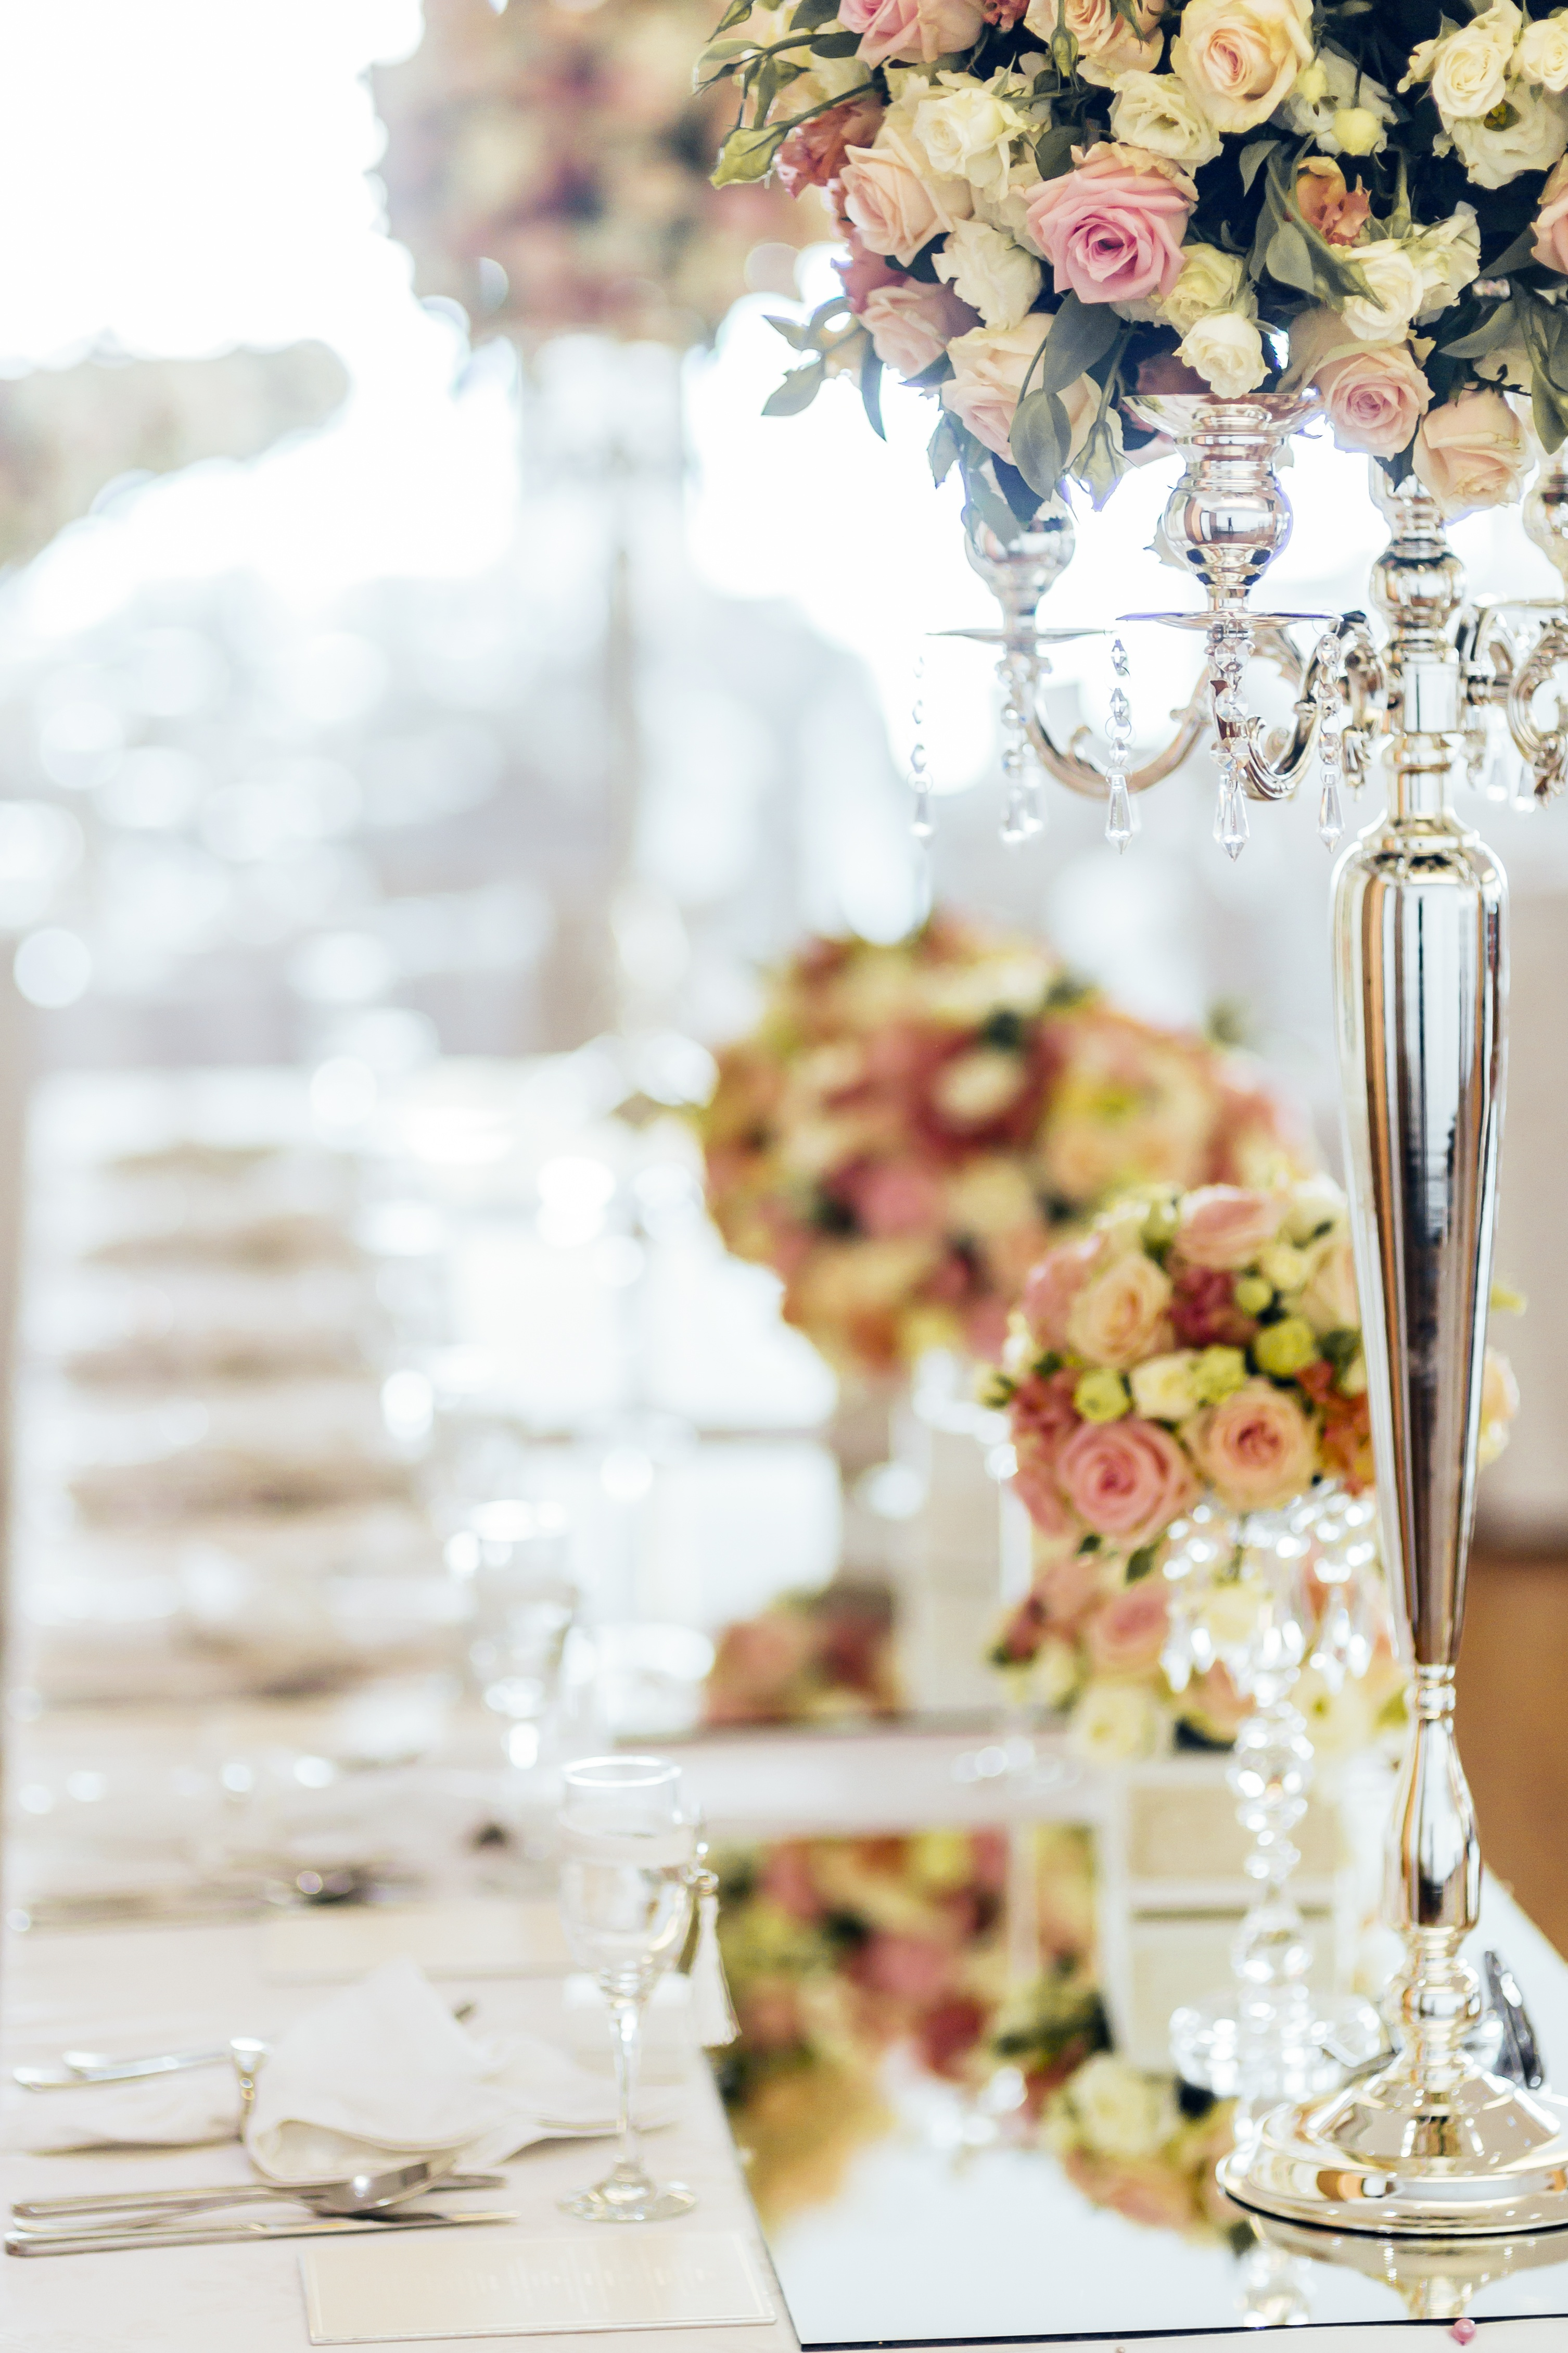 Crystal Candelabra with flower top - Sophia's Final Touch - Venue Styling - Weddings